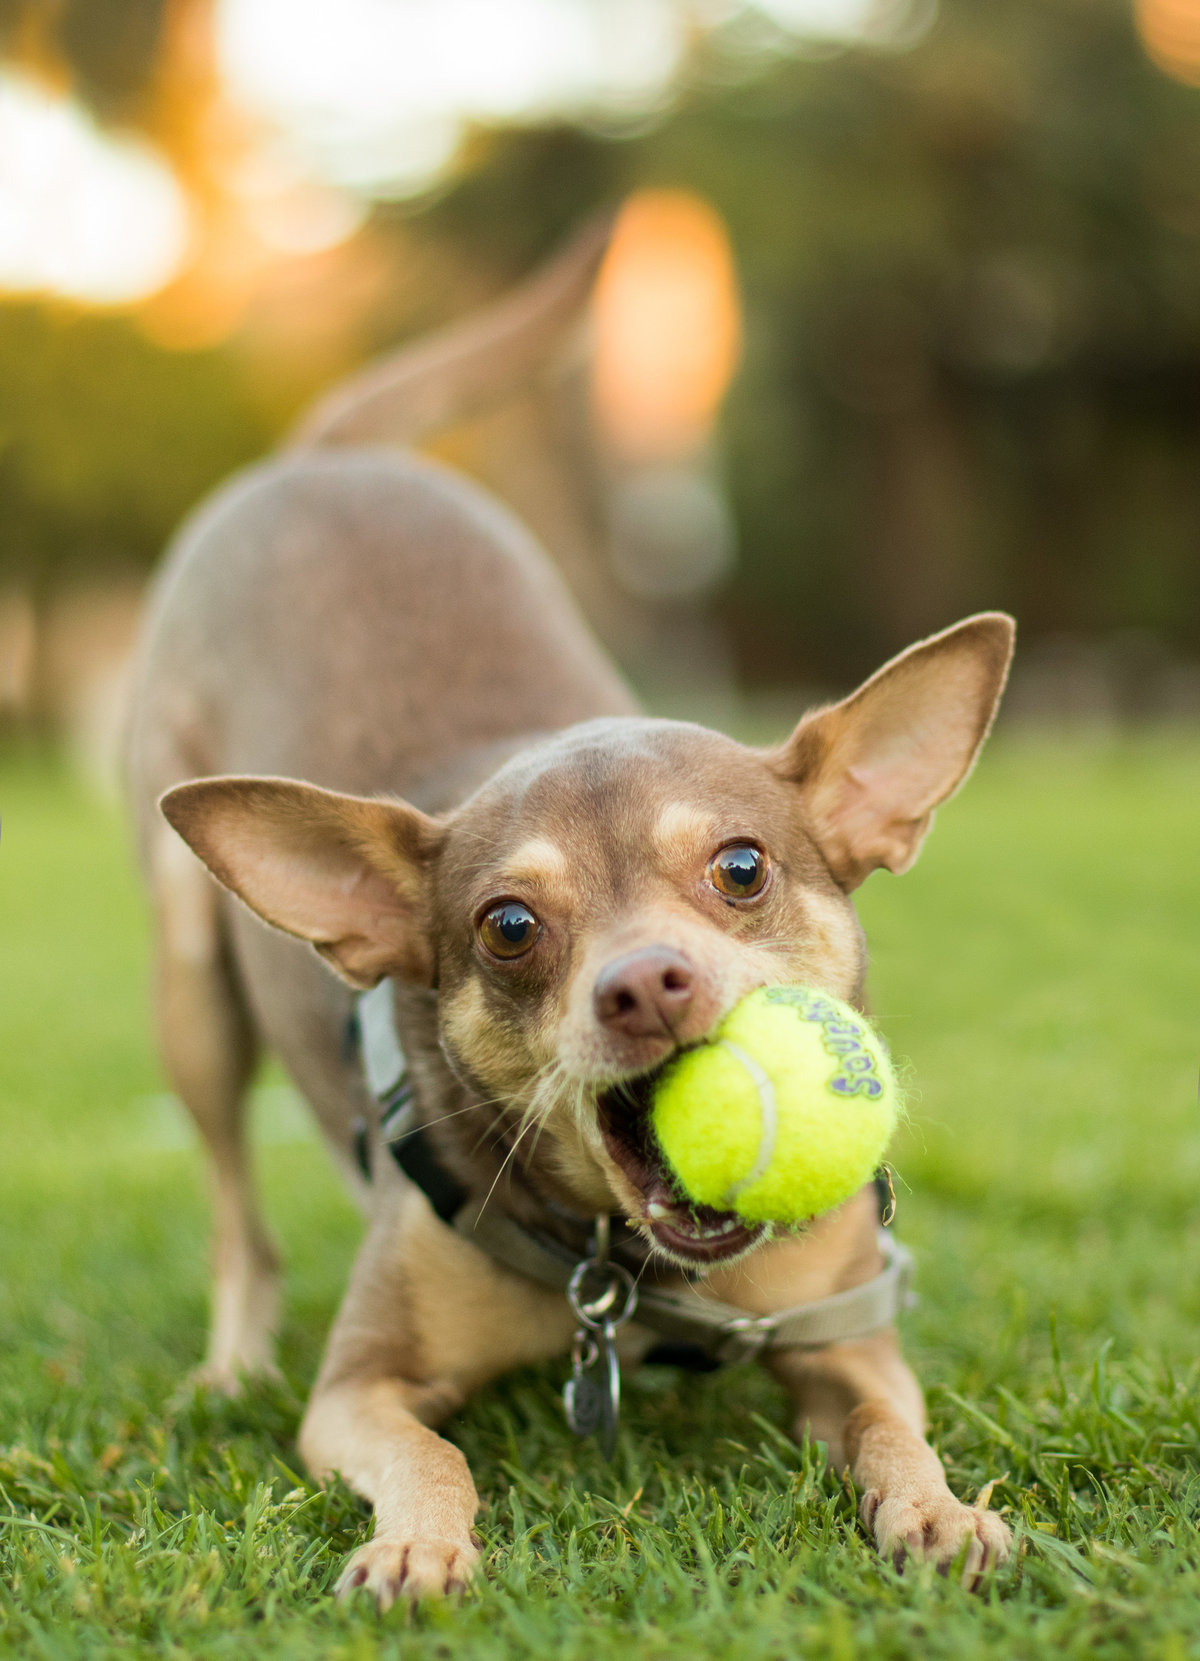 Chihuahua playing with a ball in San Diego